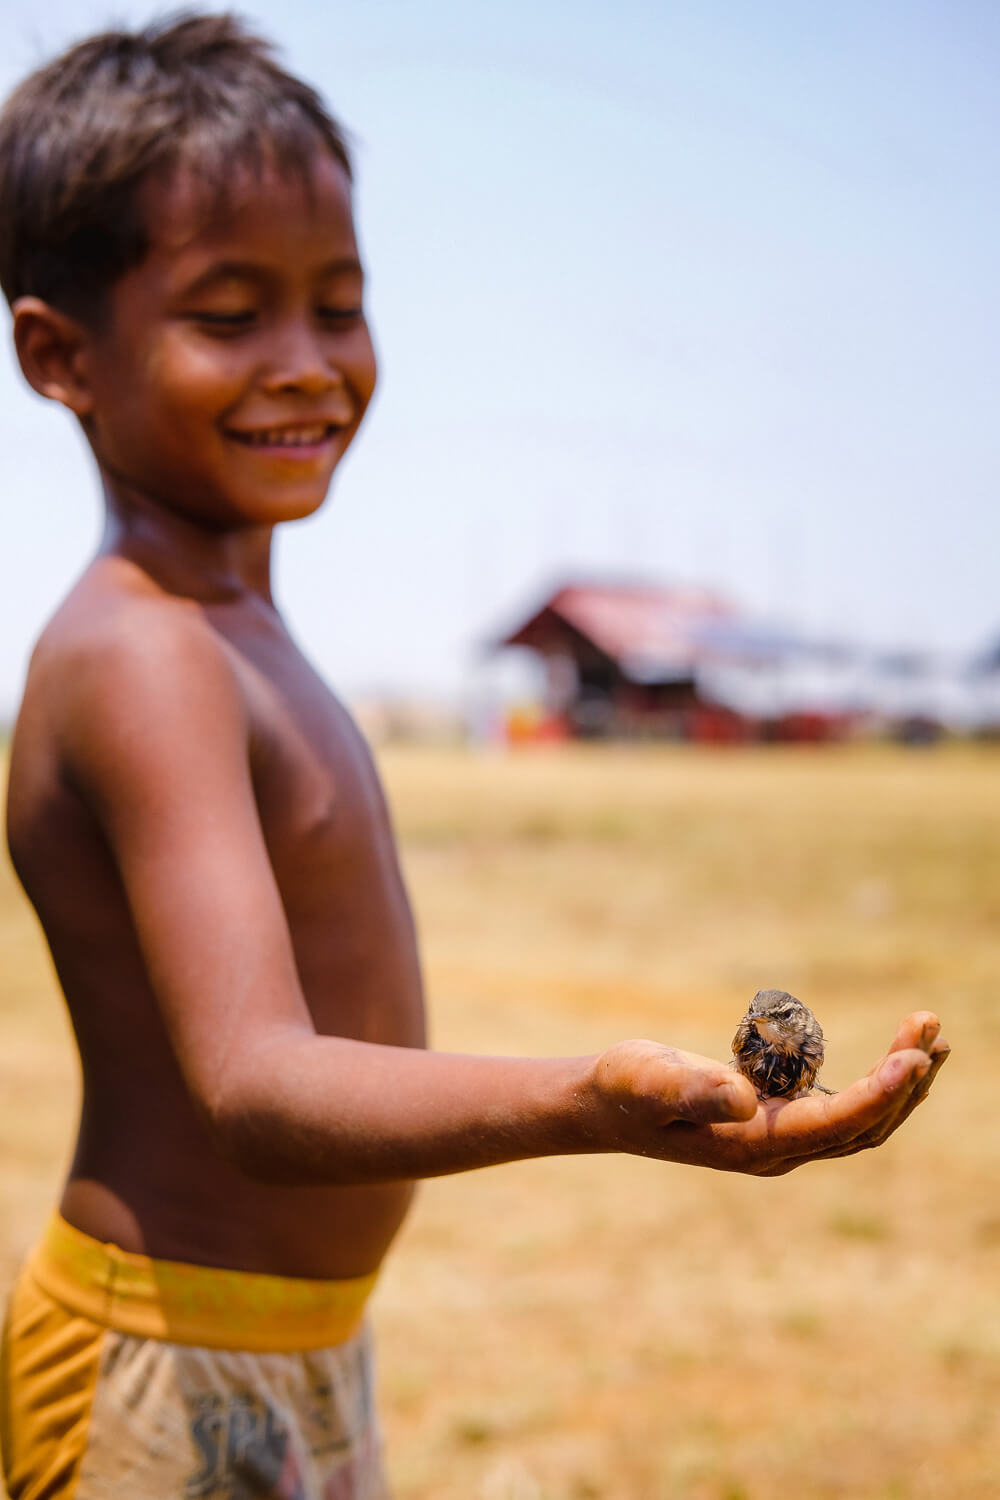 A little boy shows us his pet bird in Siem Reap.     #siemreap #angkorwat #travelguide #travelblog #siemreapitinerary #cambodia #travelphotography #landscapephotography #fujifilm #siemreapprivatetour